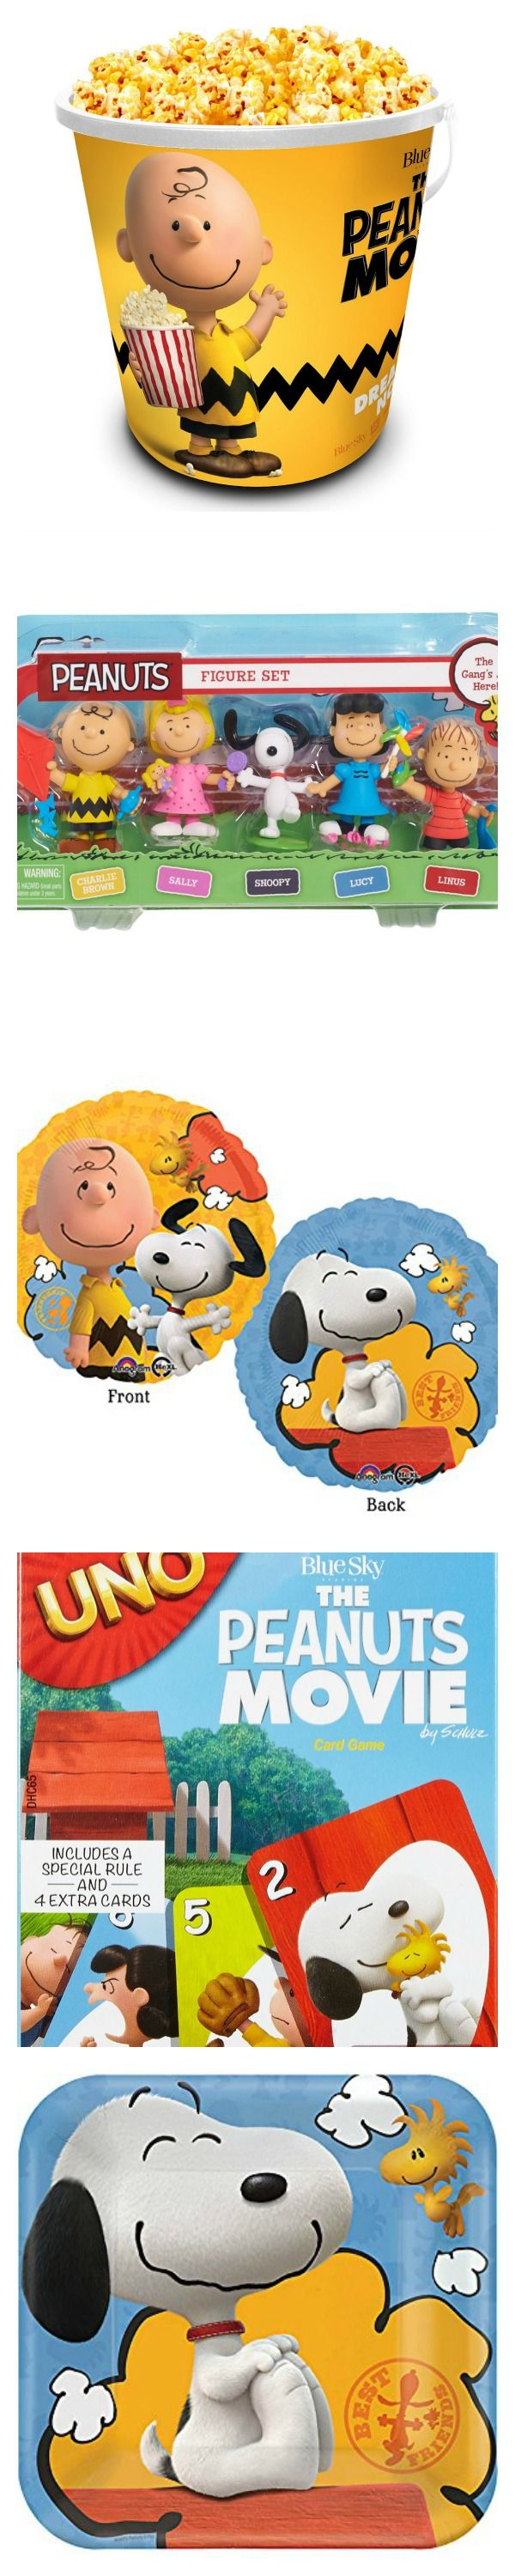 Best 25+ Charlie brown games ideas that you will like on Pinterest ...